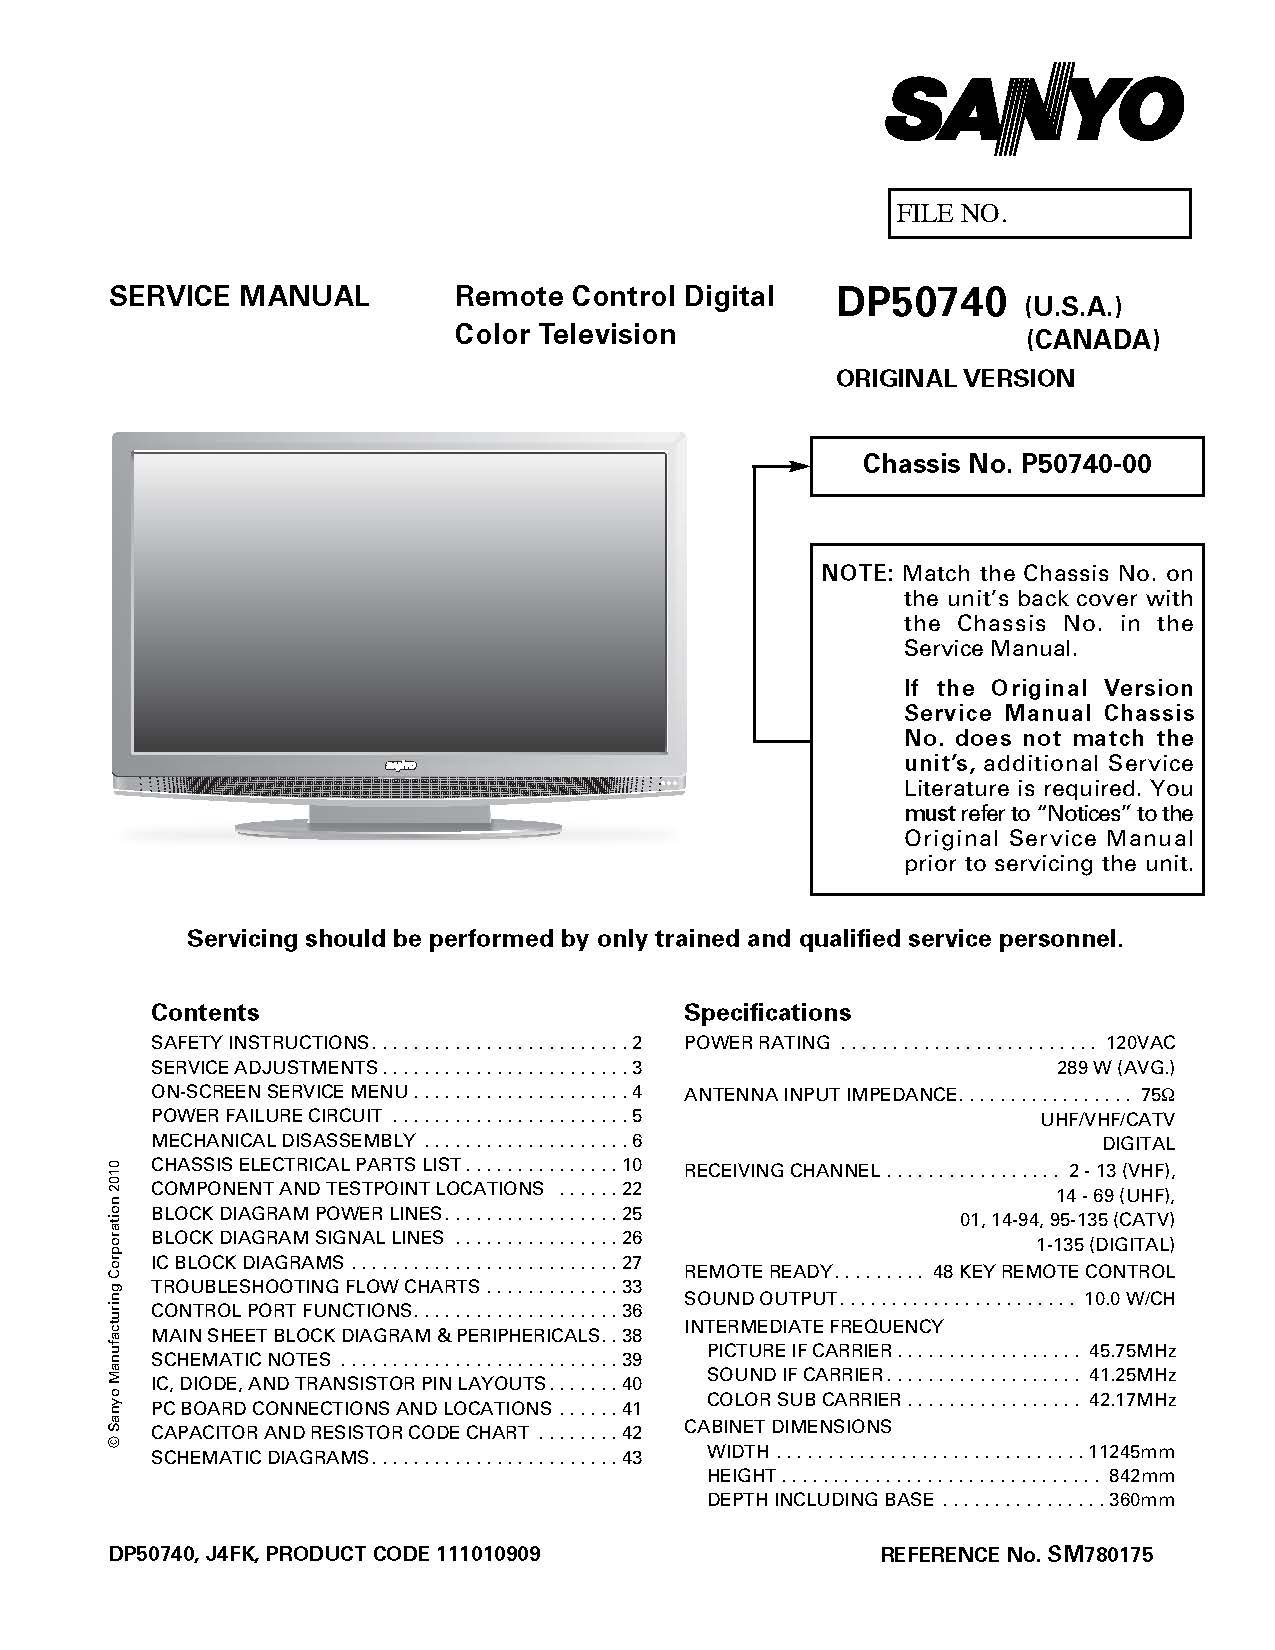 sanyo dp50740 service manual sanyo amazon com books rh amazon com Sanyo 50 Inch Plasma 720P DP50741 Sanyo 50 Inch Plasma 720P DP50741